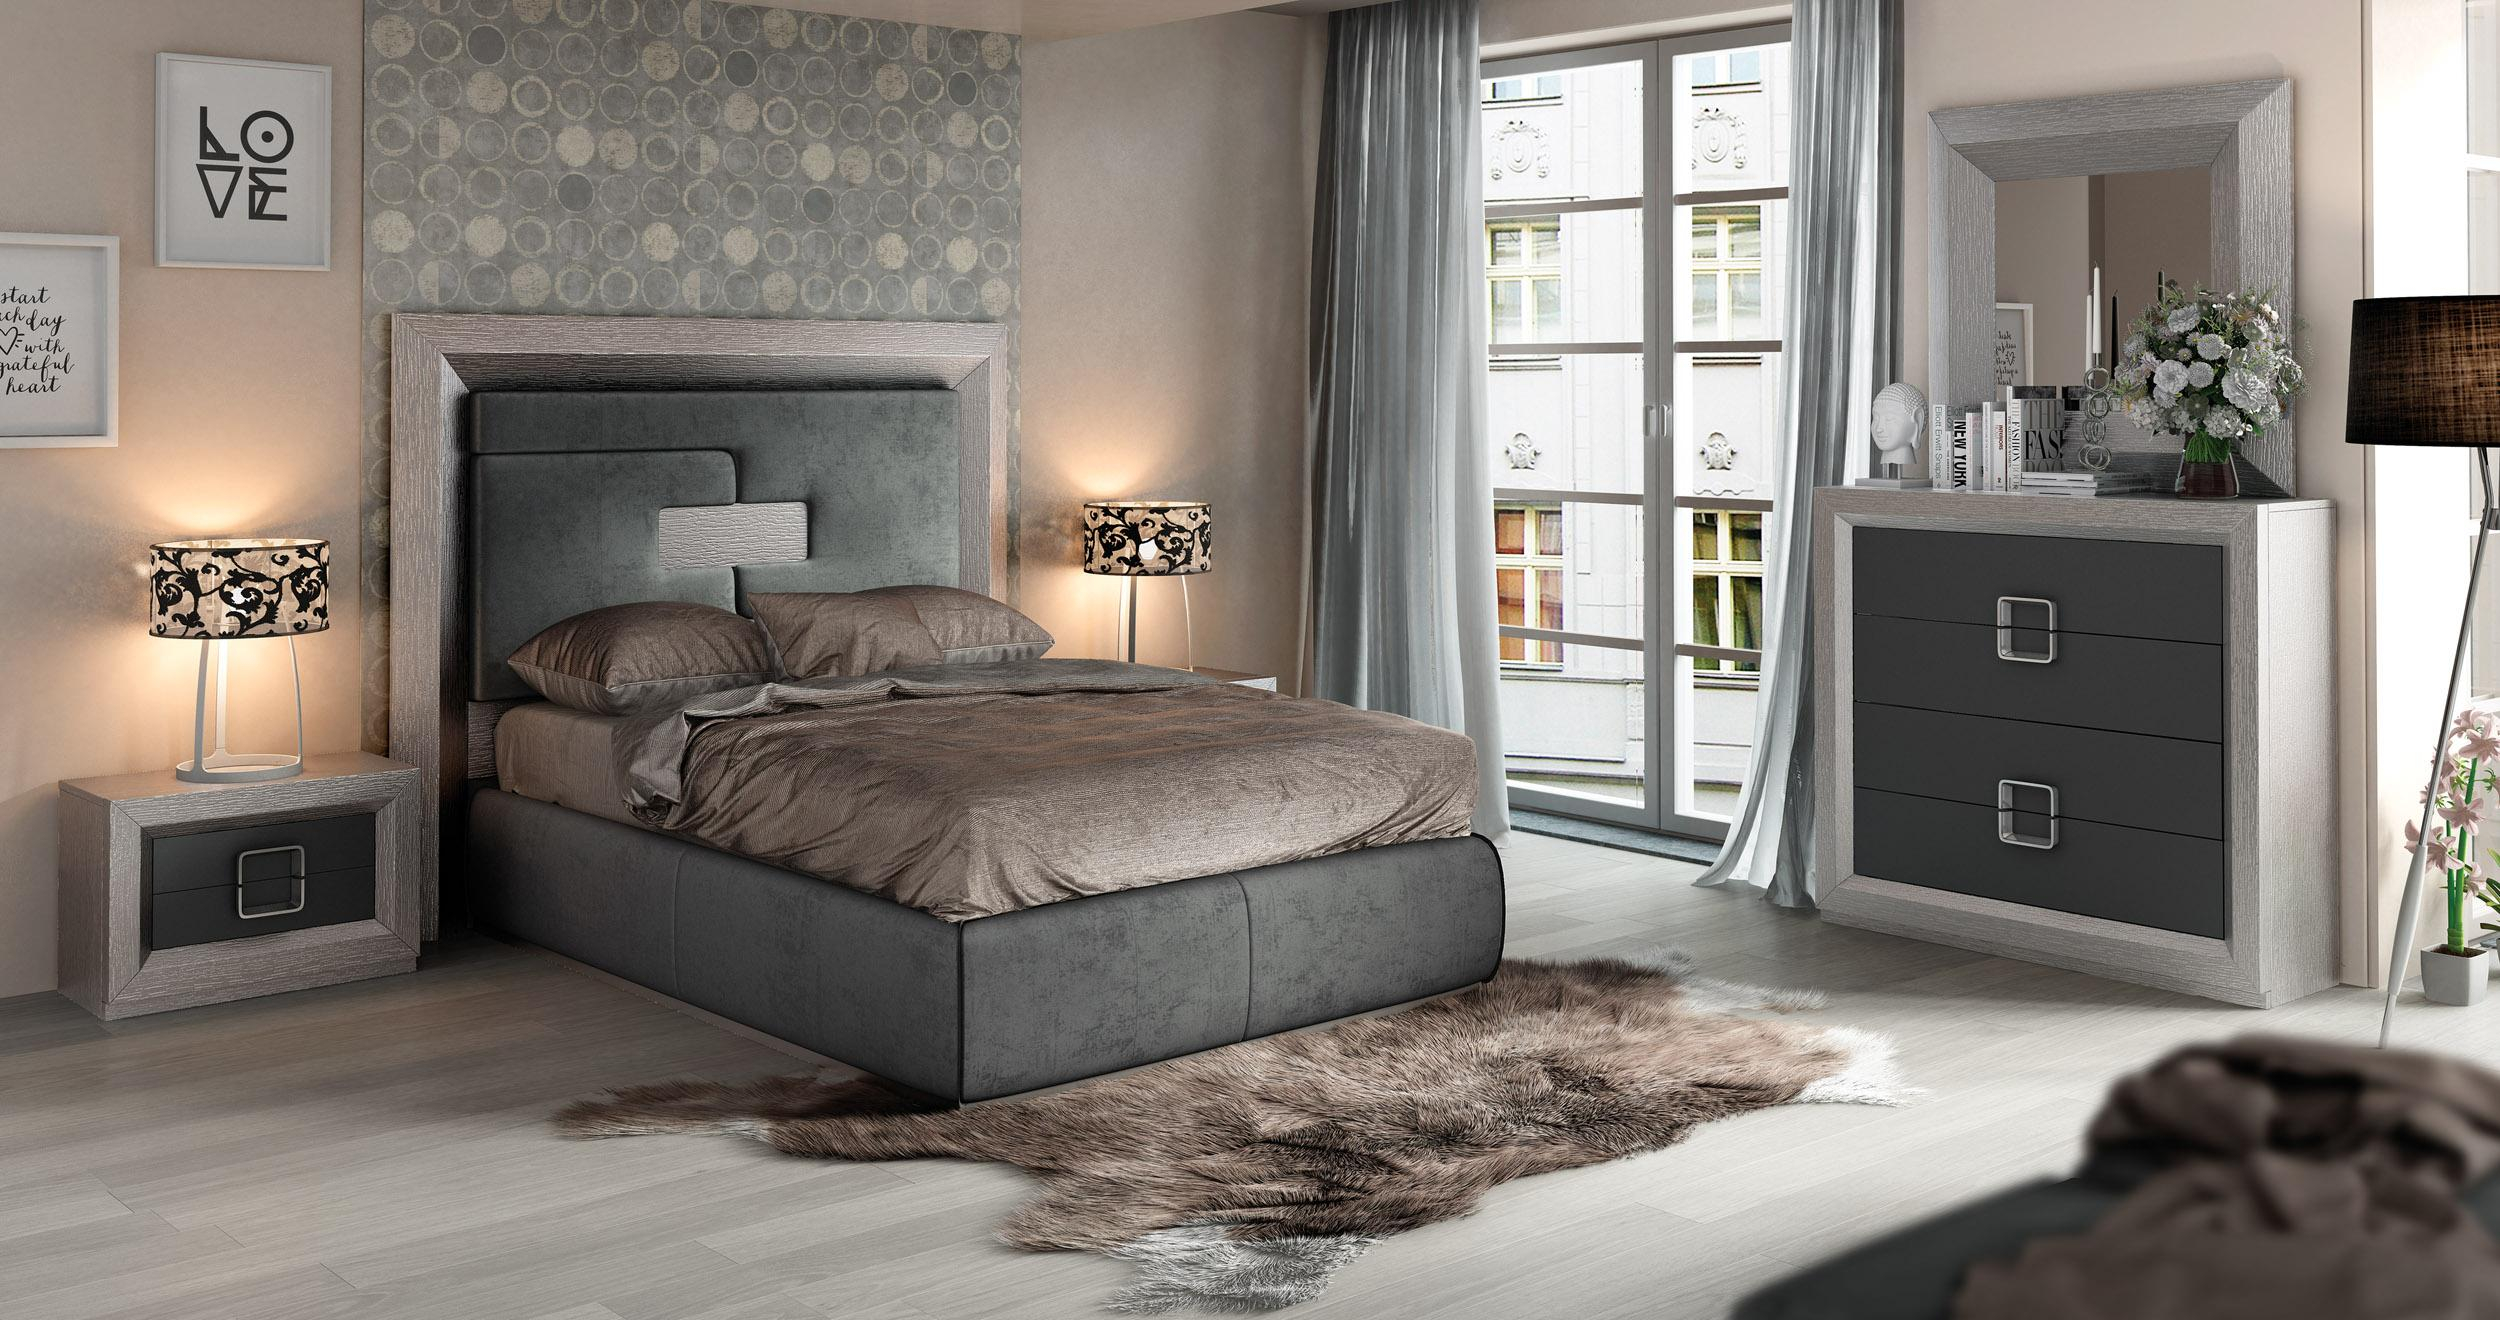 Made In Spain Quality Elite Modern Bedroom Sets With Extra Storage for 12 Some of the Coolest Ways How to Improve Modern Bedroom Sets With Storage